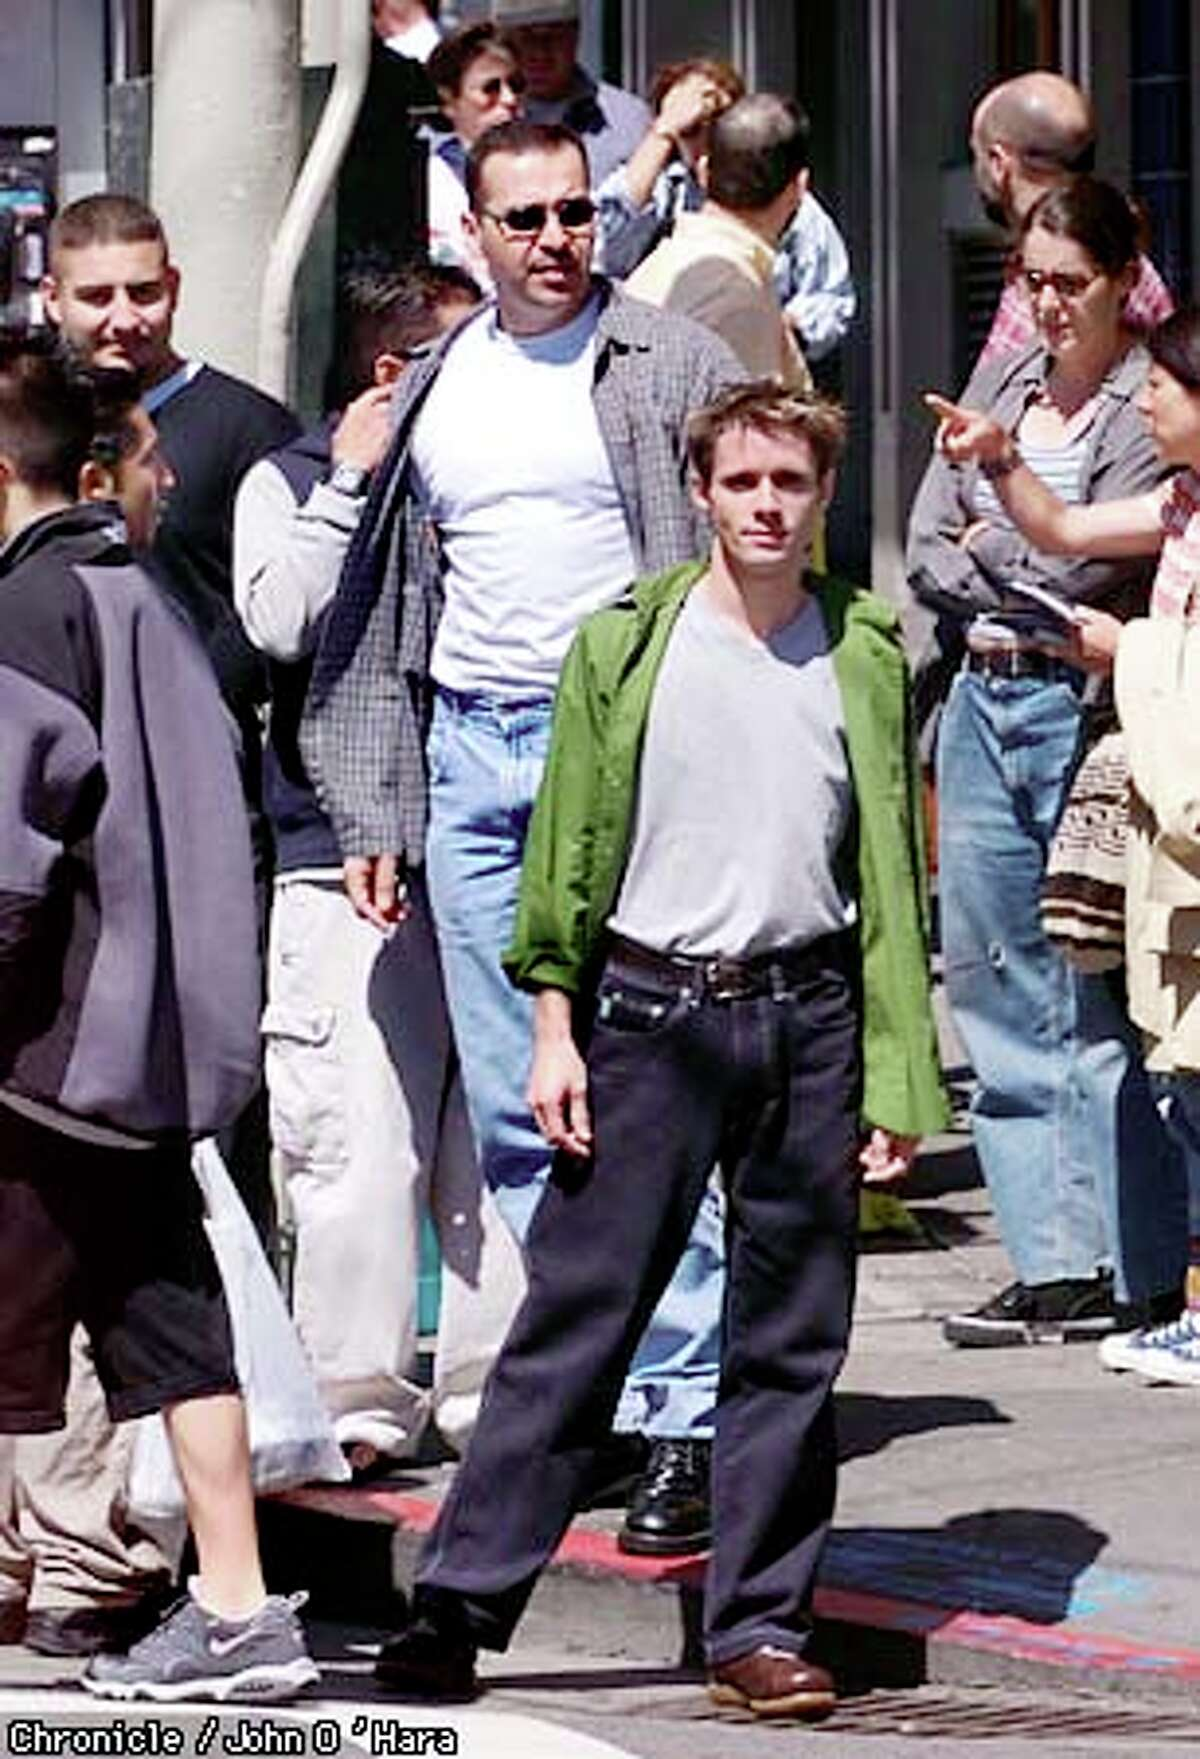 """Danny Pintauro, who played Jonathan on """"Who's the Boss?,"""" is still waiting to discover his passion. Chronicle photo by John O'Hara"""